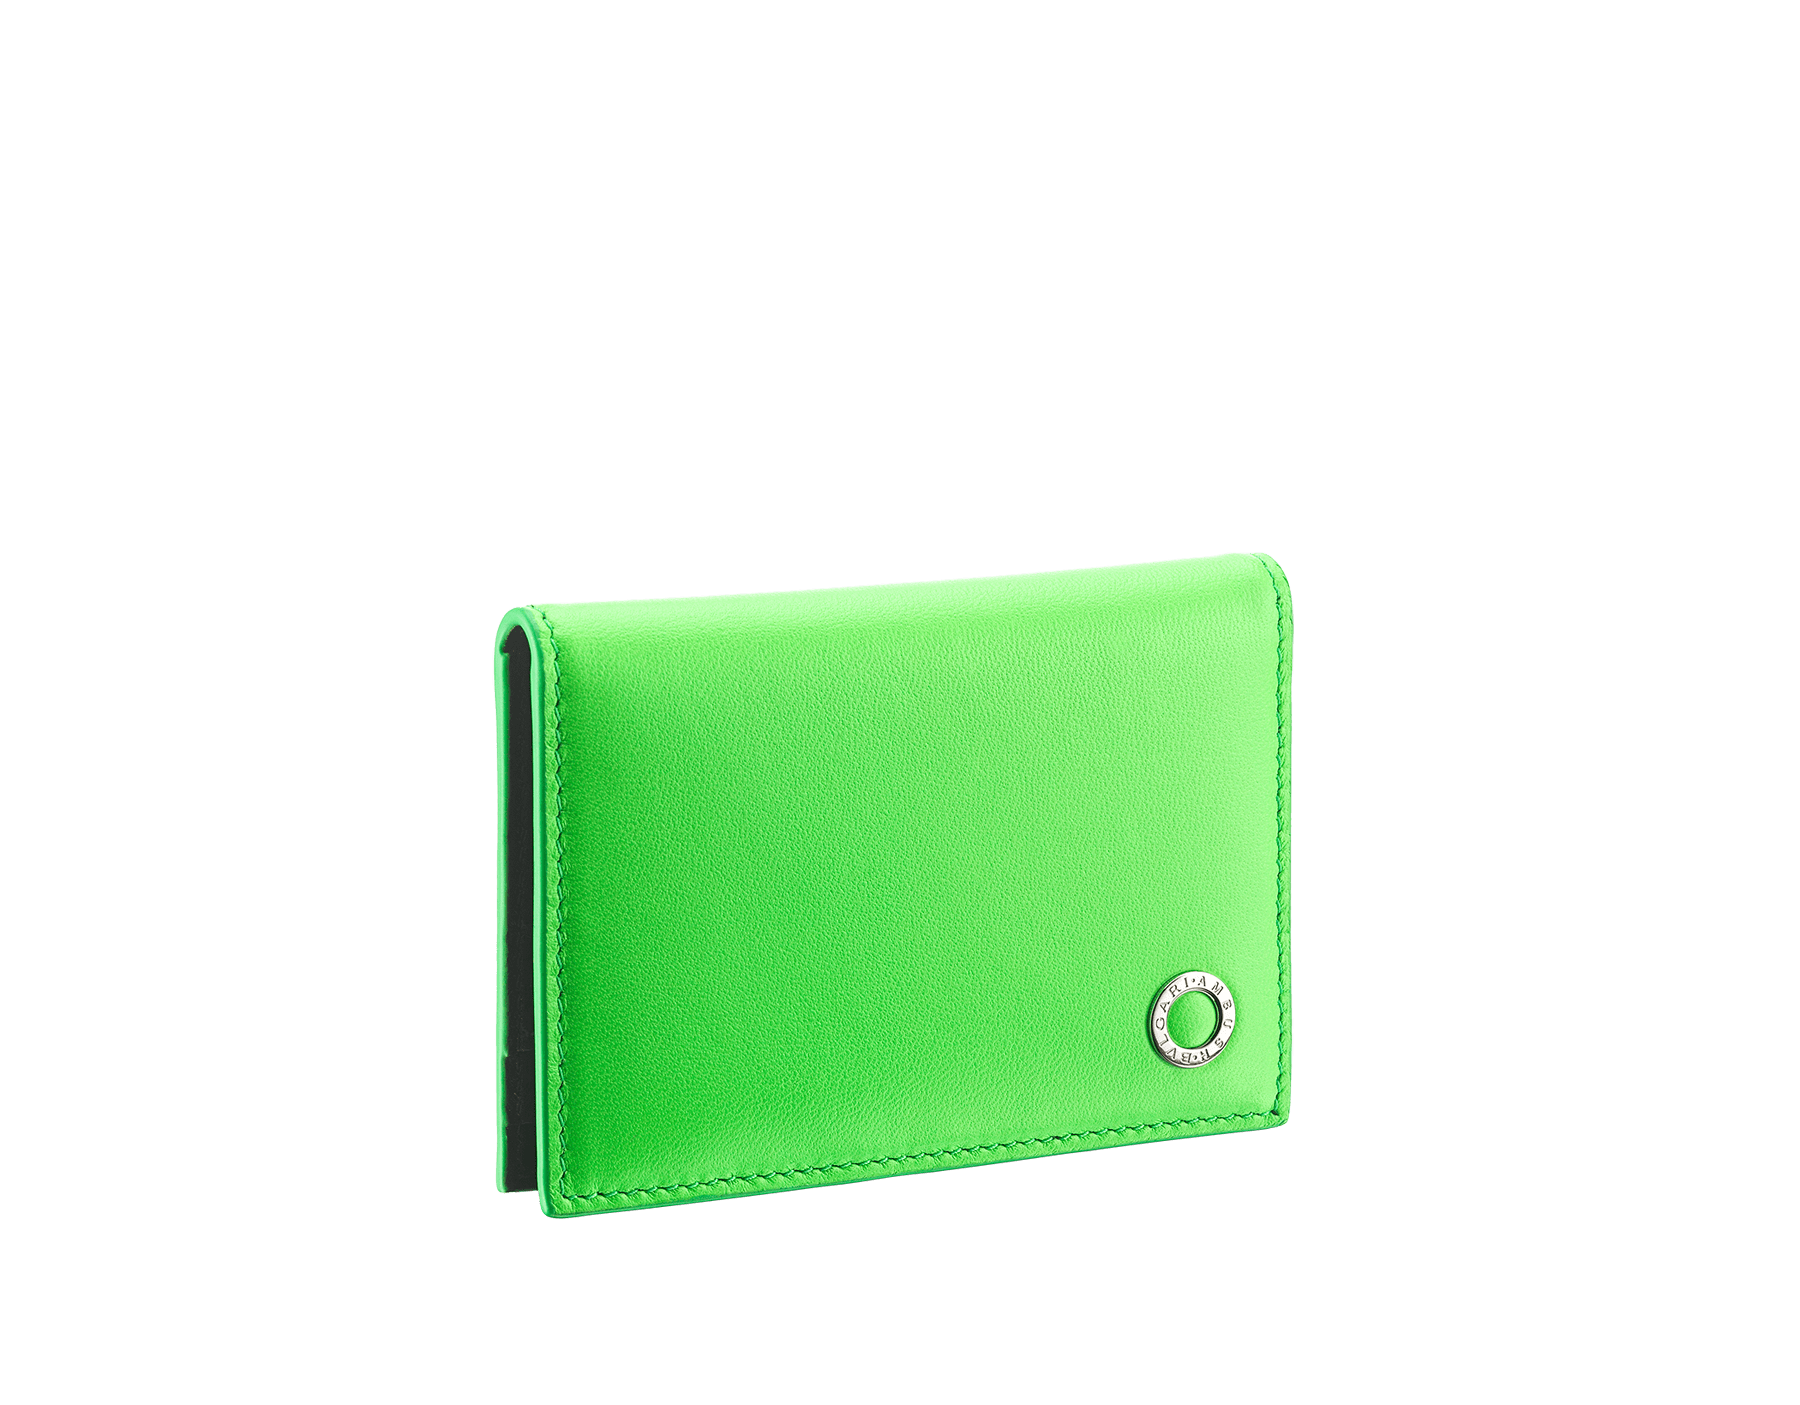 """Ambush x Bvlgari"" vertical card holder in bright green and black nappa leather, palladium-plated brass ""BVLGARI AMBUSH"" décor on one side and special ""BVLGARI AMBUSH"" logo print on the other. Limited Edition. 290359 image 1"